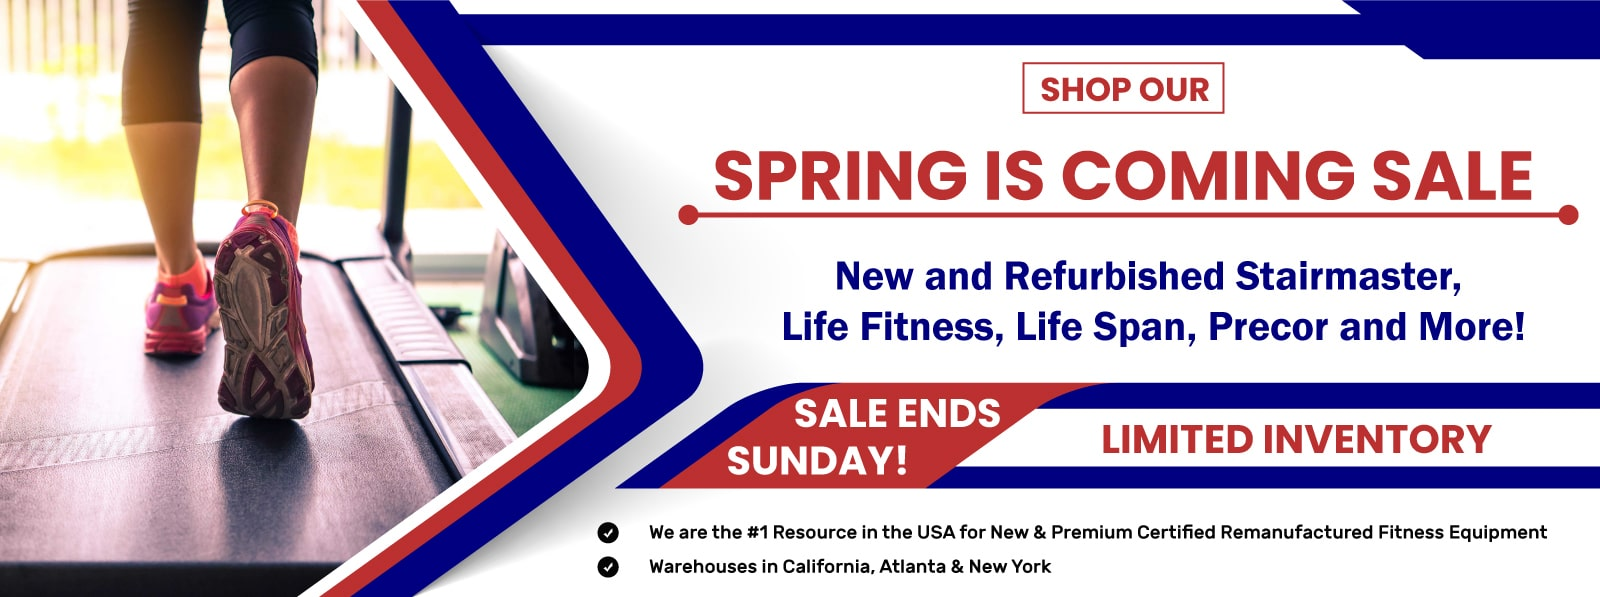 Shop our Spring is Coming Sale